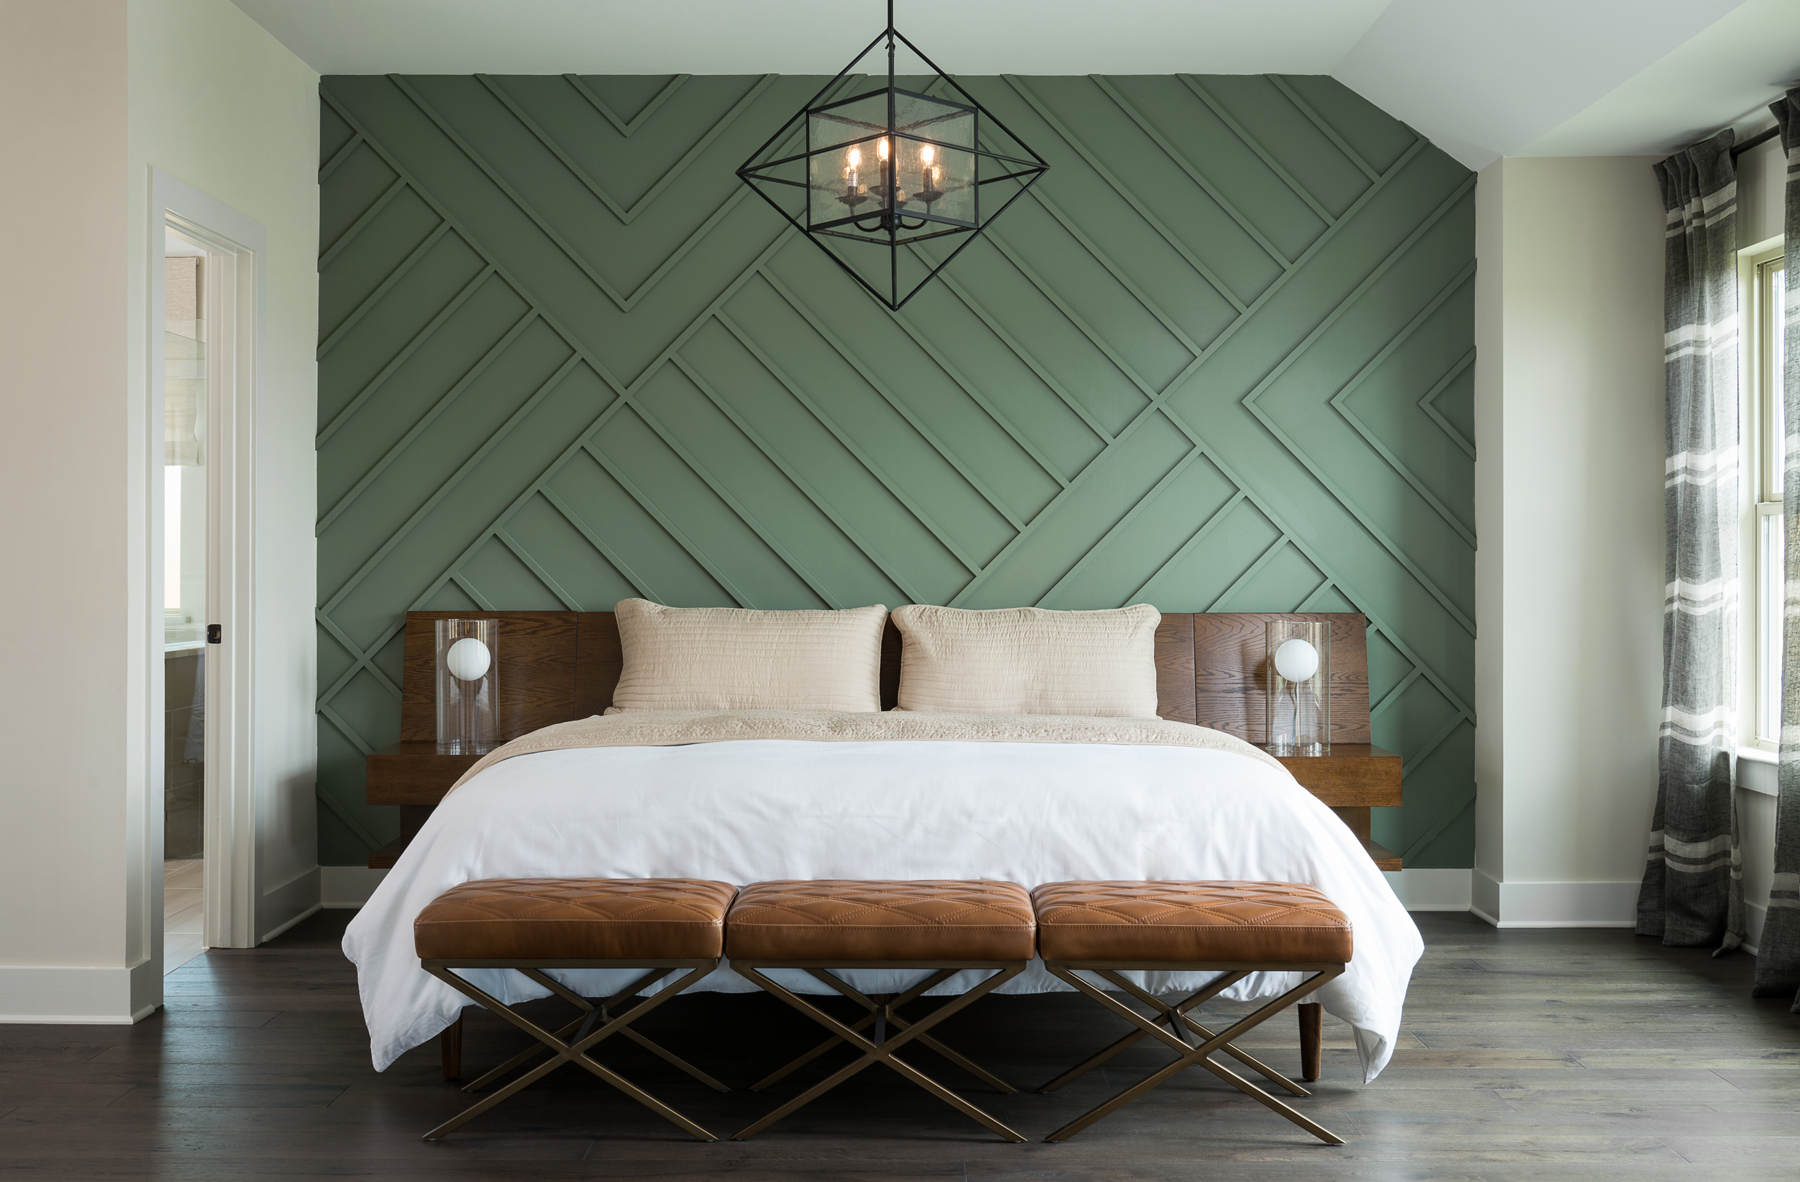 Board and batten interior ideas - green bedroom accent wall